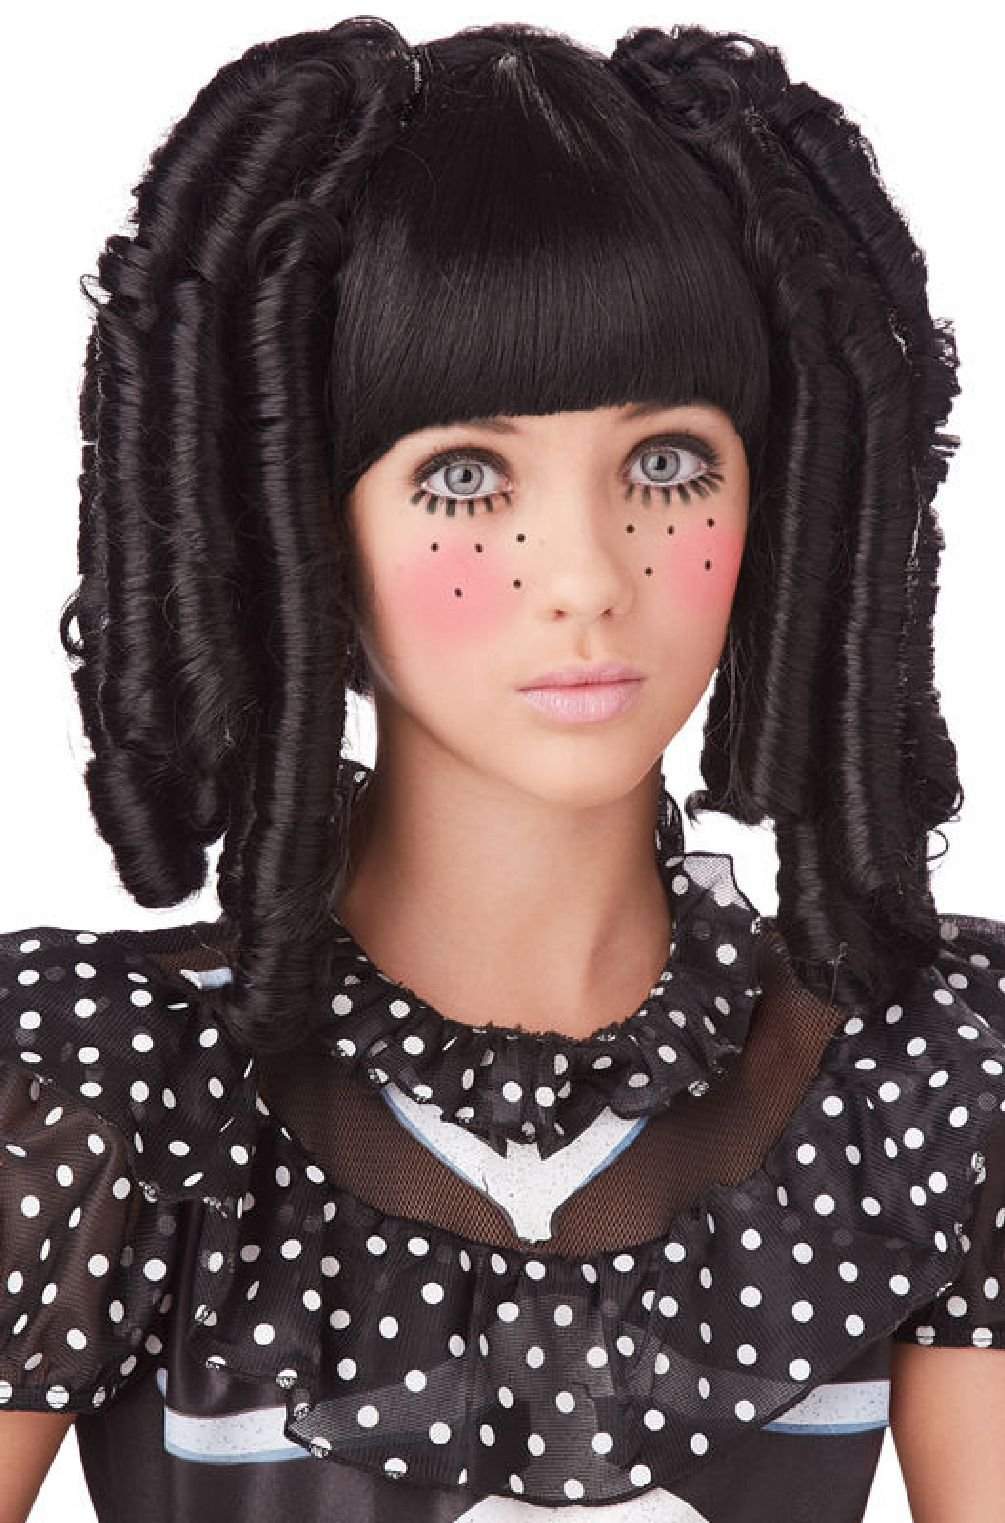 Baby Doll Curls With Bangs Halloween Costume Wig (Black)